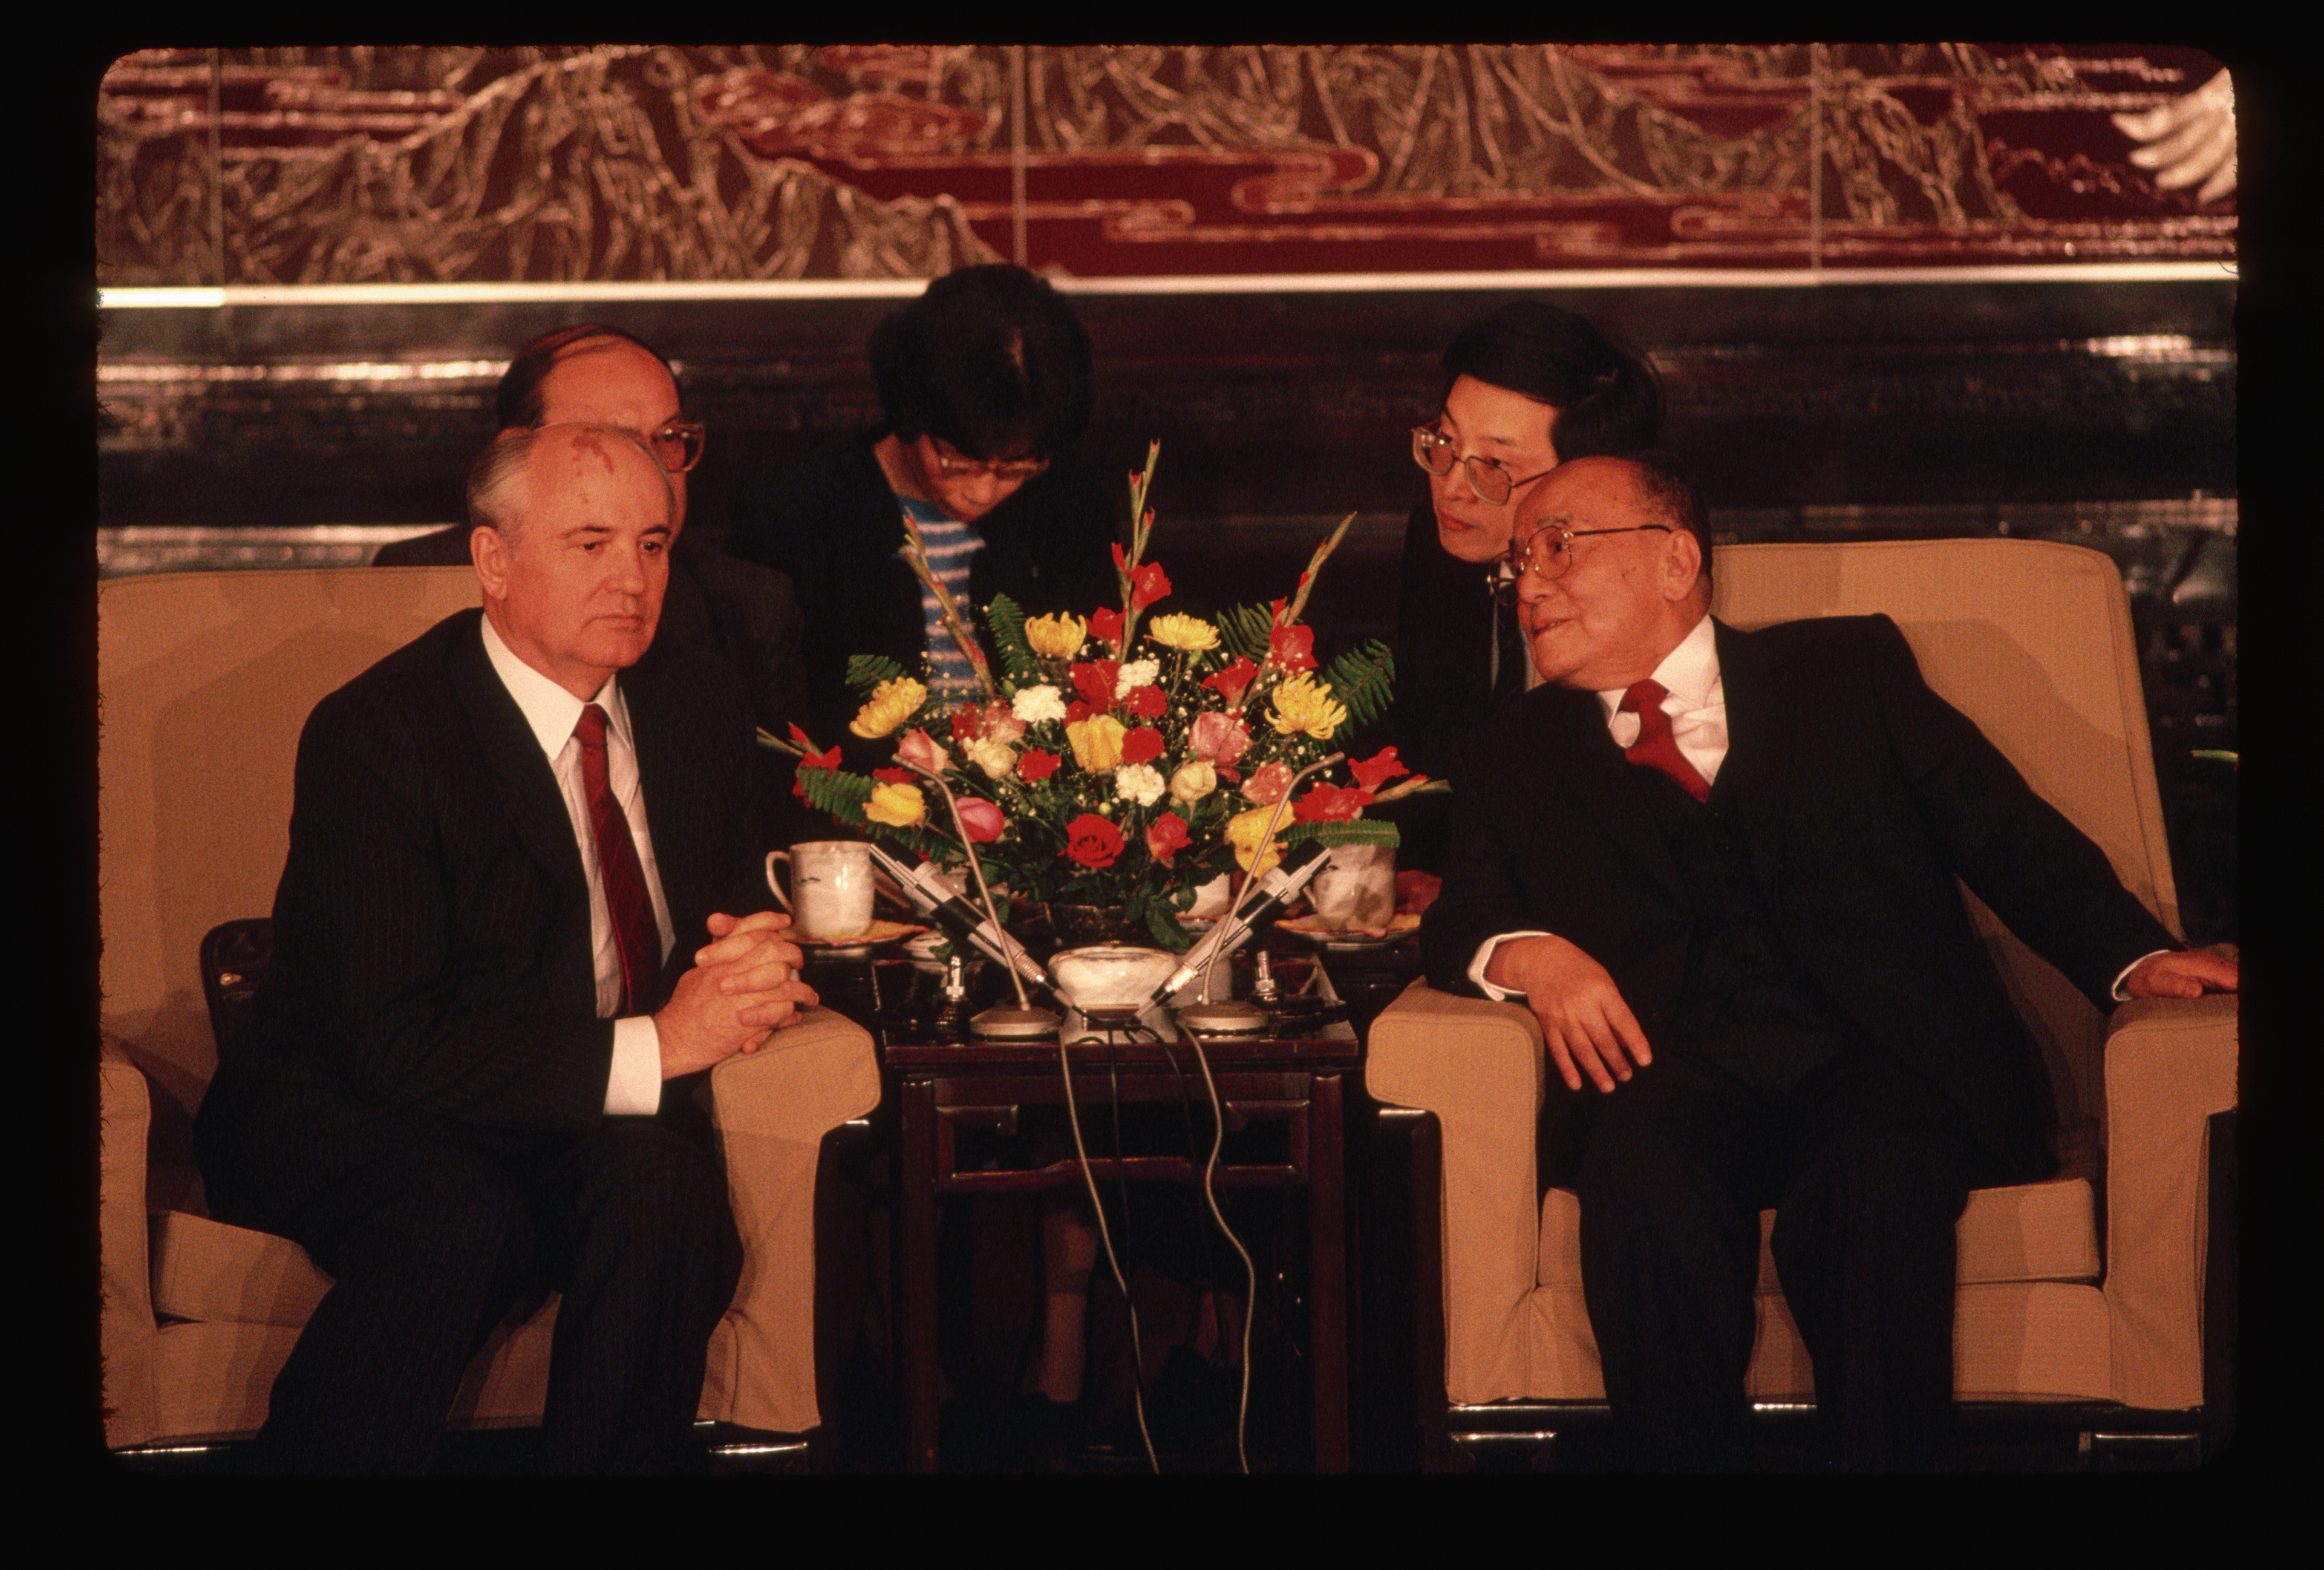 Presidents Yang and Gorbachev meet in the Great Hall of the People in Beijing.